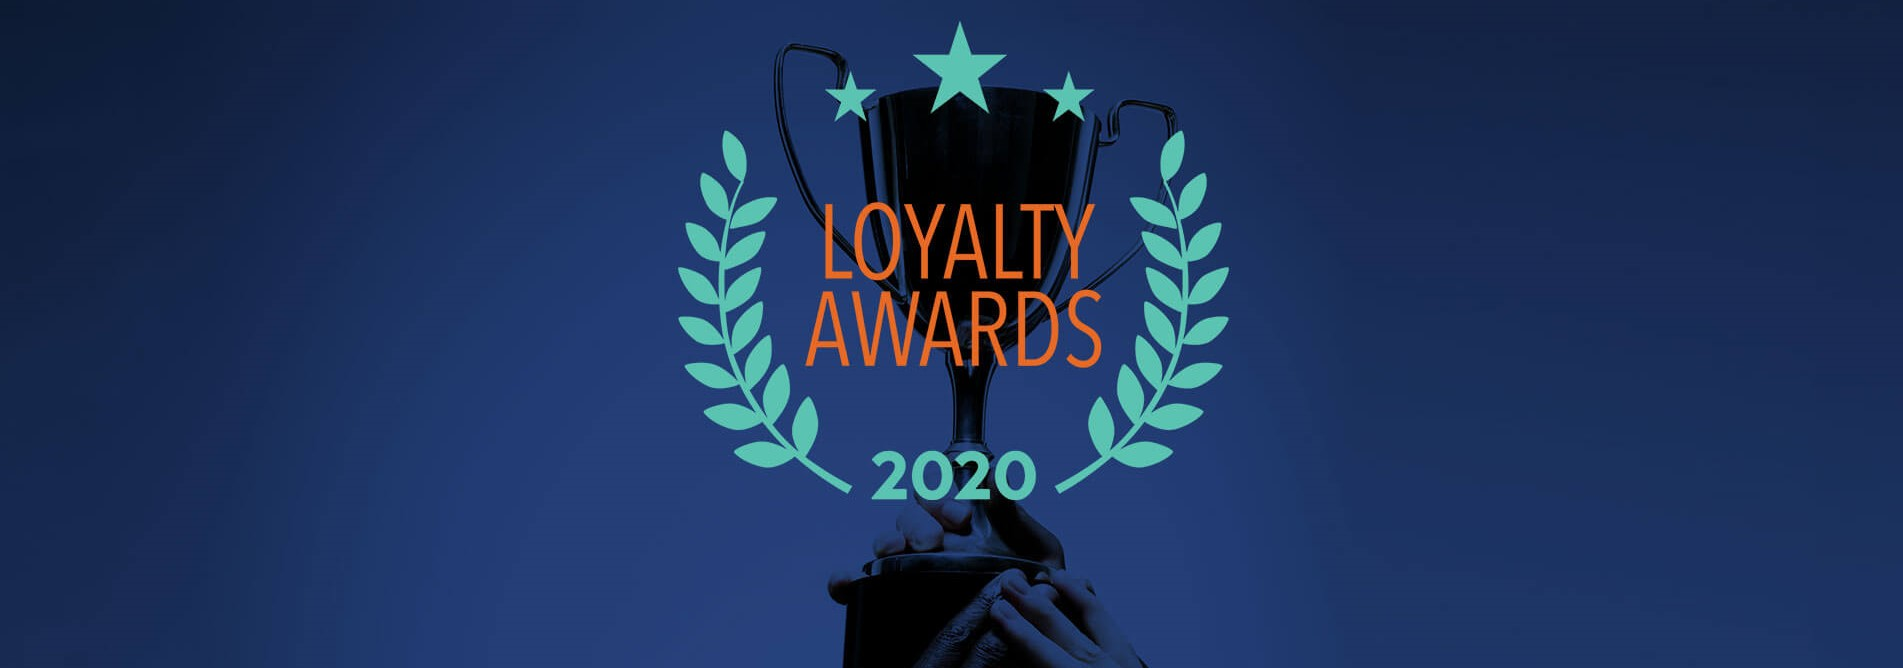 Loyalty Awards Winner